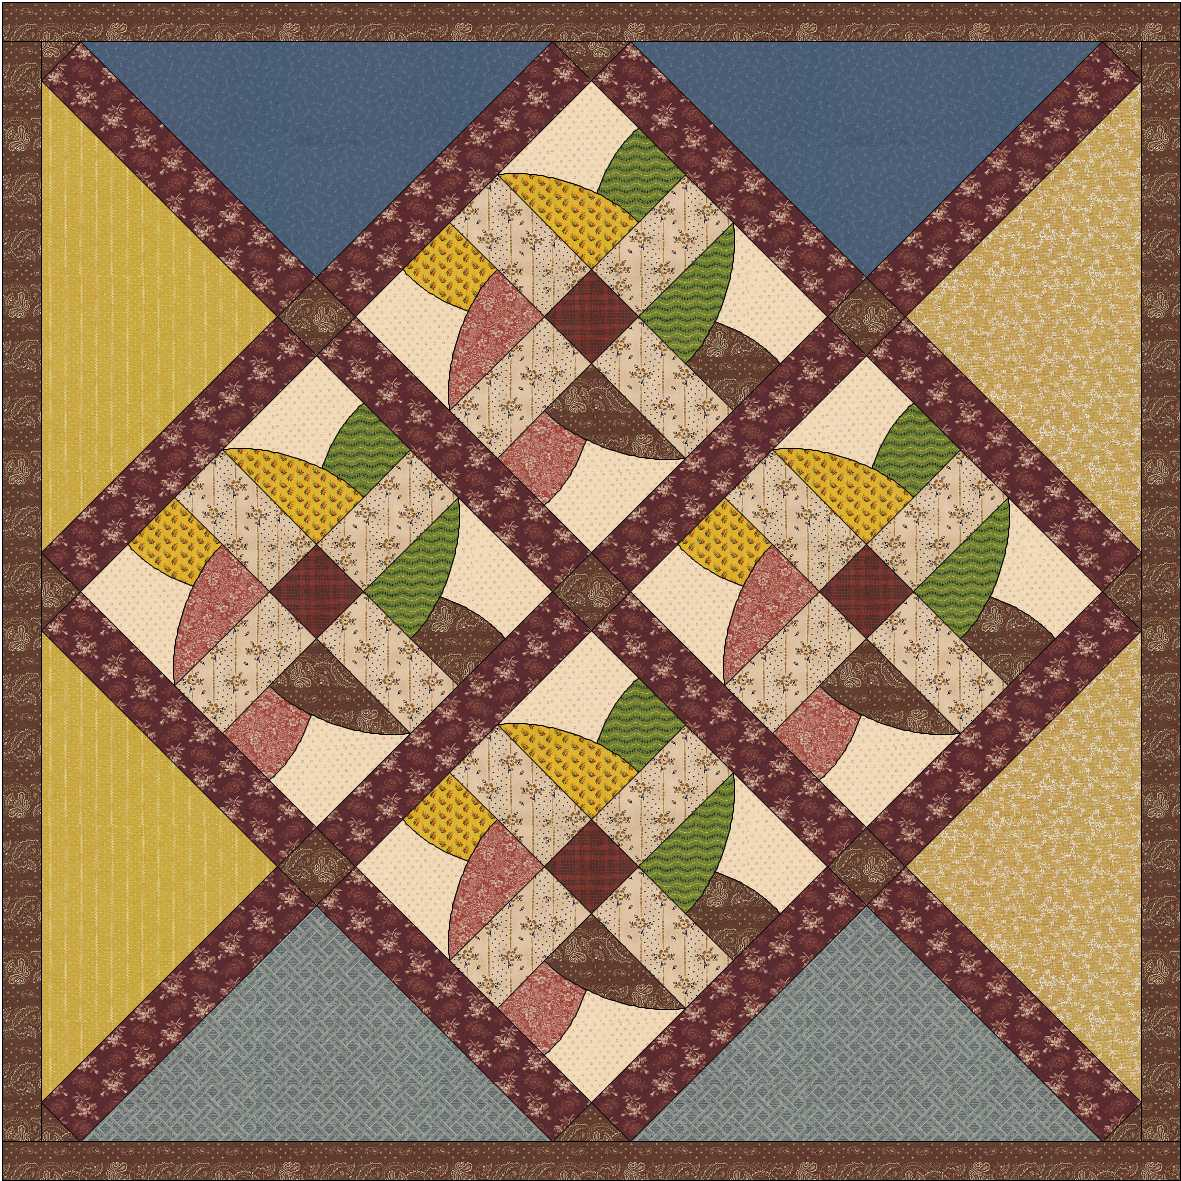 Country Rose Quilts: Block 2 -Wo die Liebe hinfällt